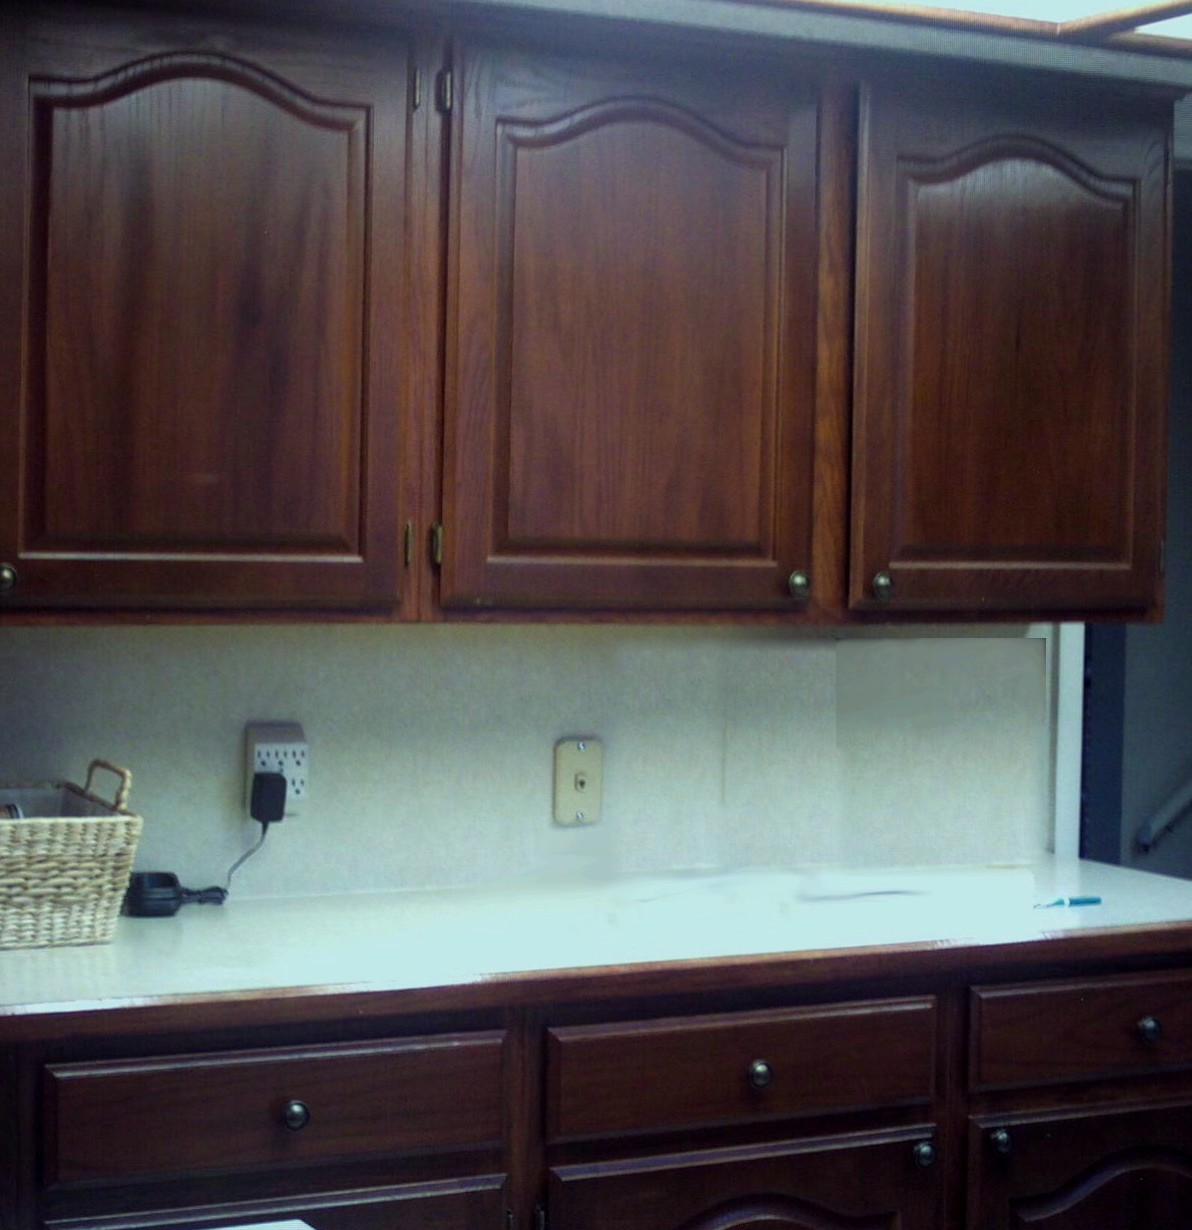 Stained Kitchen Cabinets: Subway Tile Backsplash, Wood Cabinets And Cabinets On